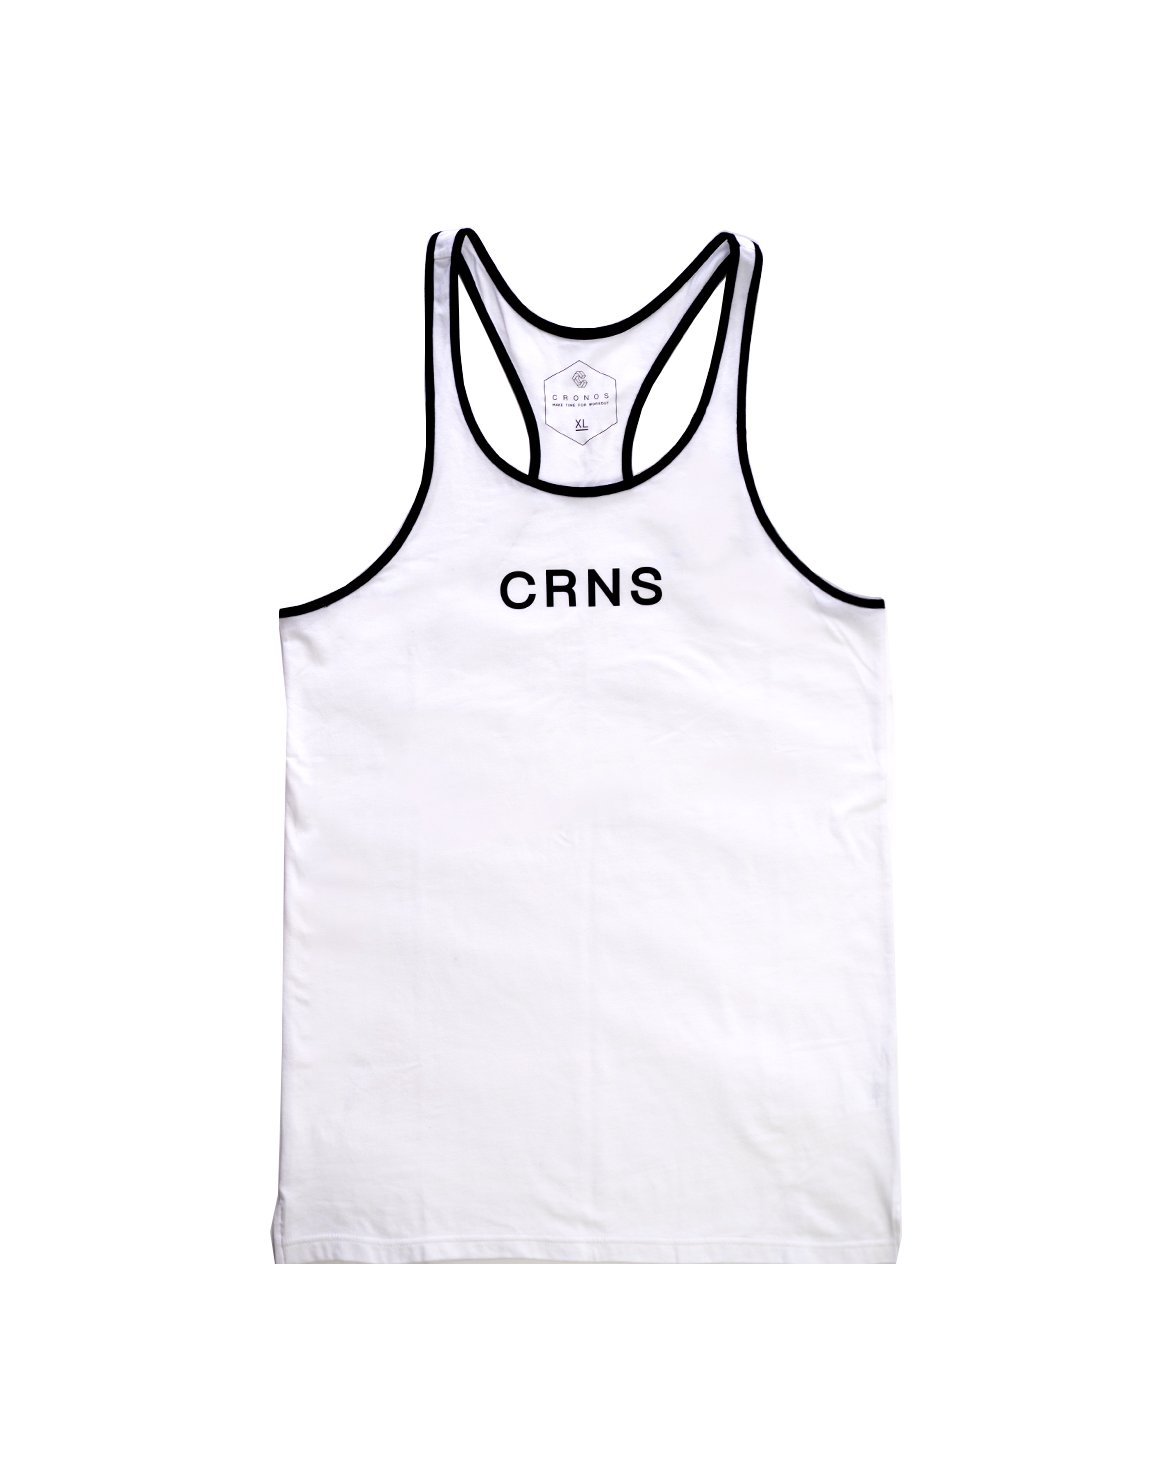 <img class='new_mark_img1' src='https://img.shop-pro.jp/img/new/icons1.gif' style='border:none;display:inline;margin:0px;padding:0px;width:auto;' />CRNS PIPING TANK TOP WHITE